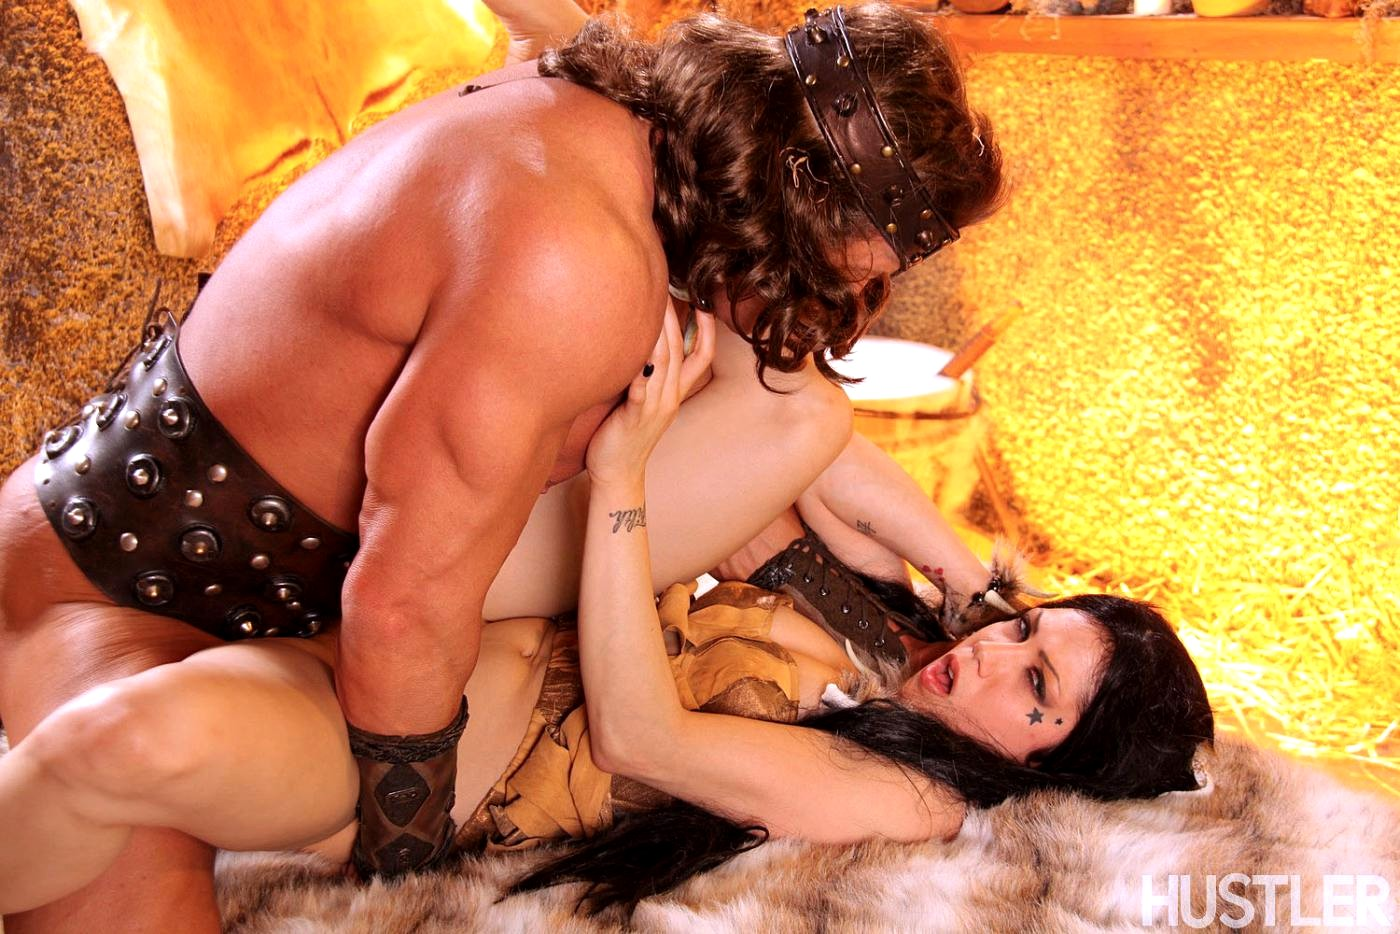 Review of conan the barbarian